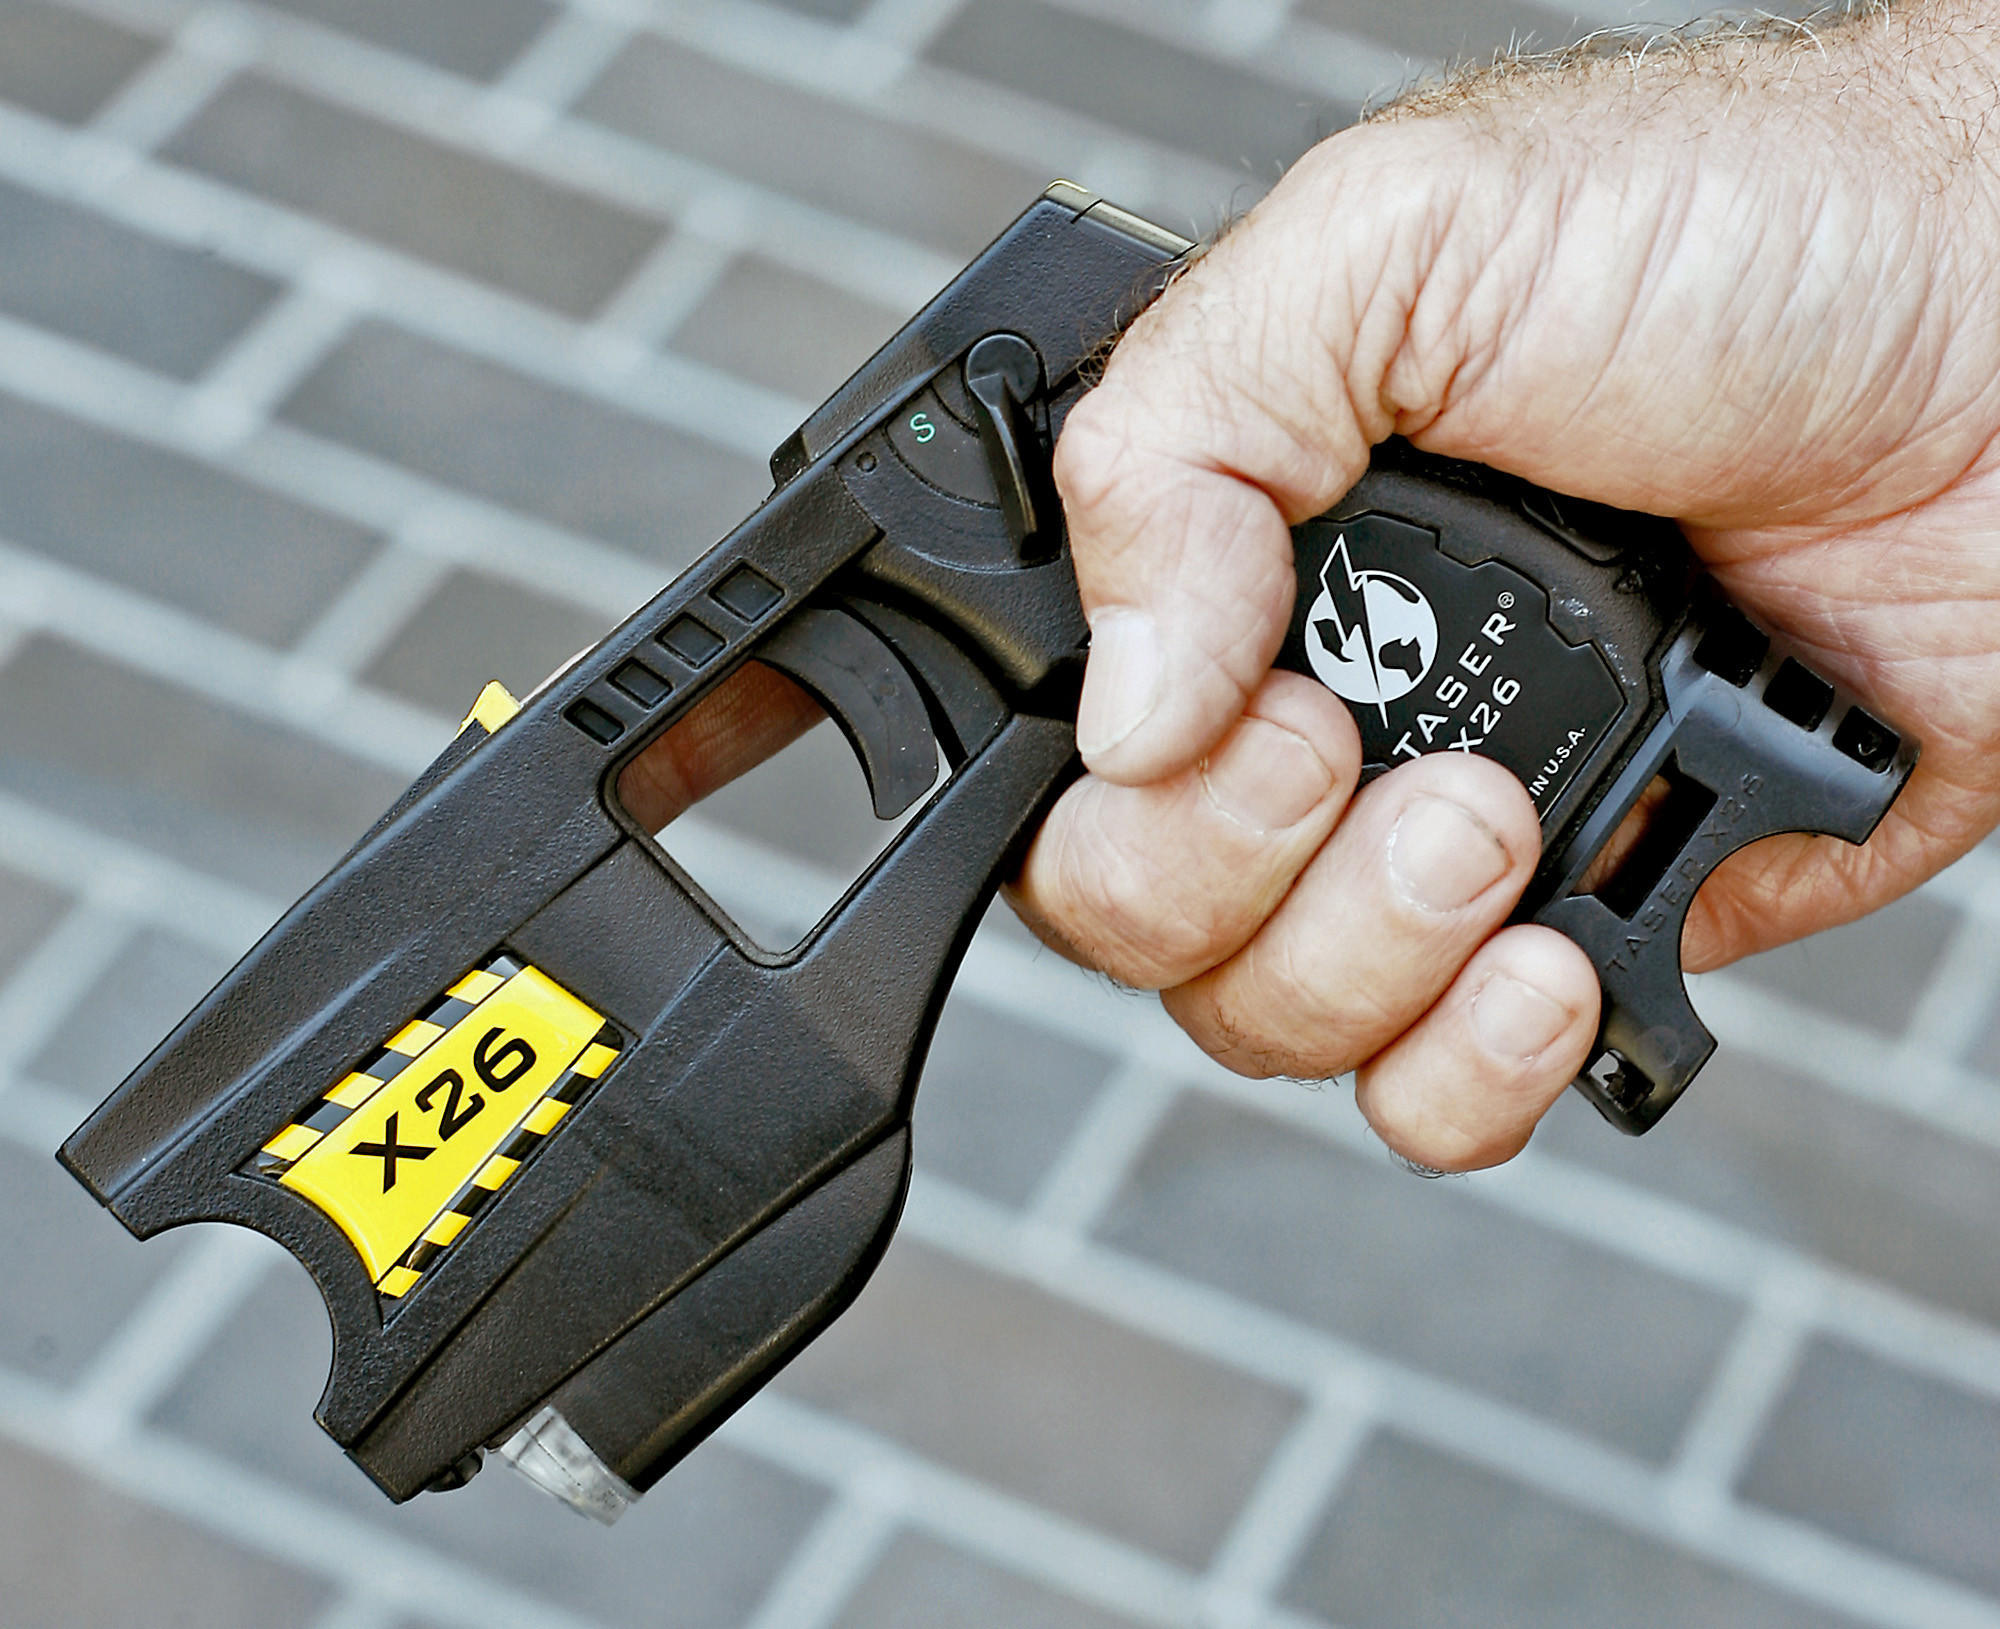 Police Officer Patrick Richardson holds one of the Glendale Police Department's Taser guns in Glendale on Monday, June 18, 2007. The department will will soon receive new Tasers with the added capability to record more information about incidents when deployed.